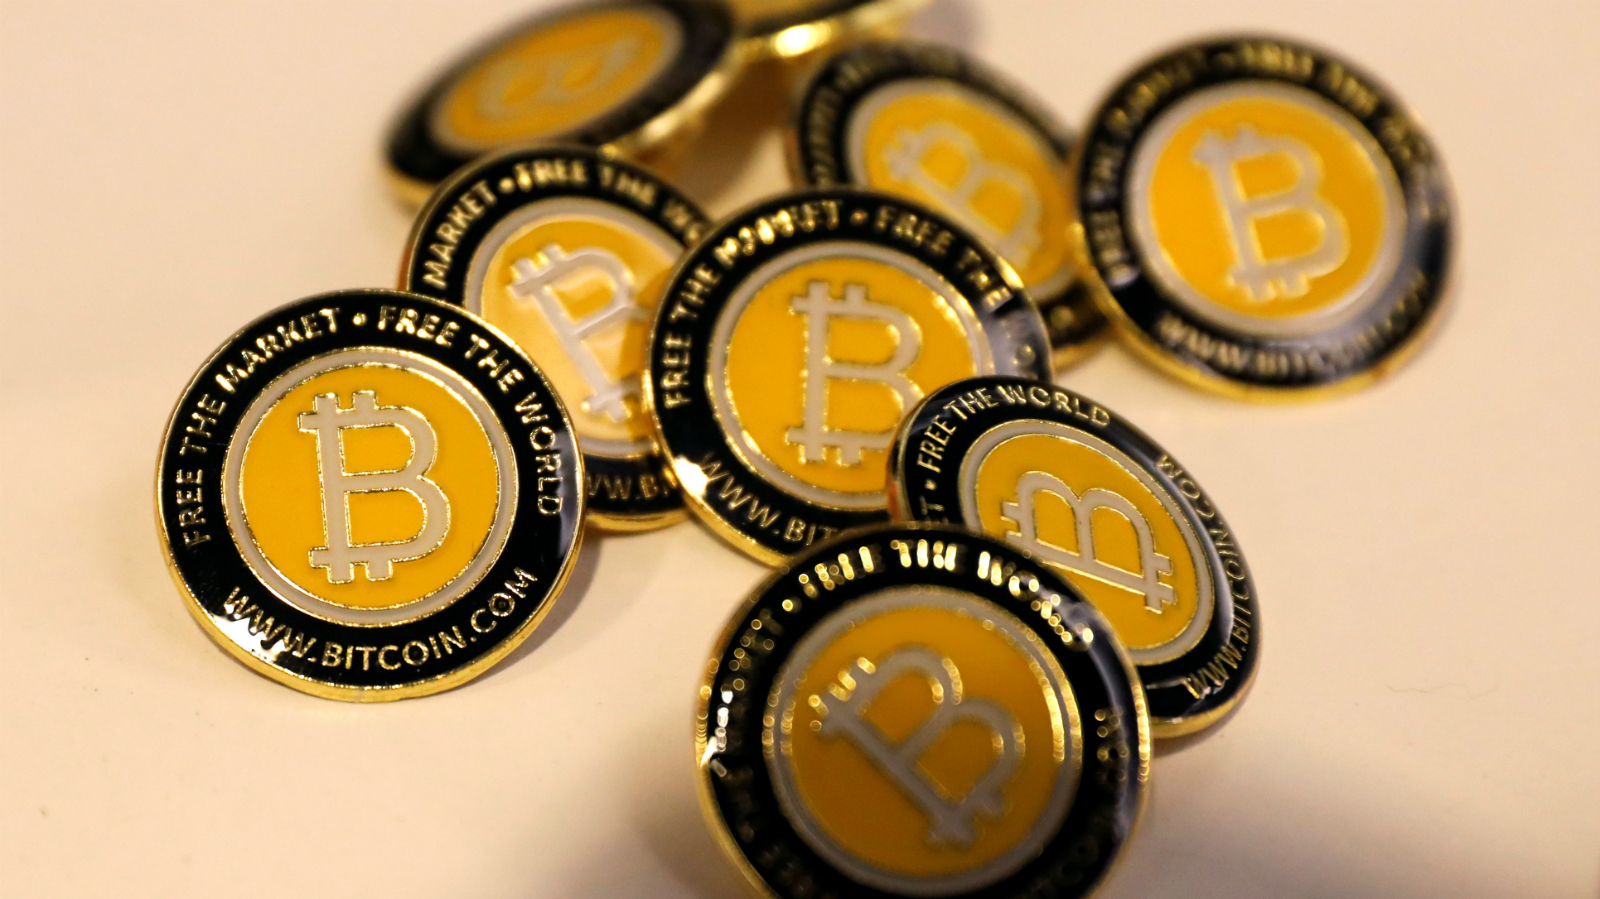 Bitcoin.com buttons are seen displayed on the floor of the Consensus 2018 blockchain technology conference in New York City, New York, U.S., May 16, 2018.